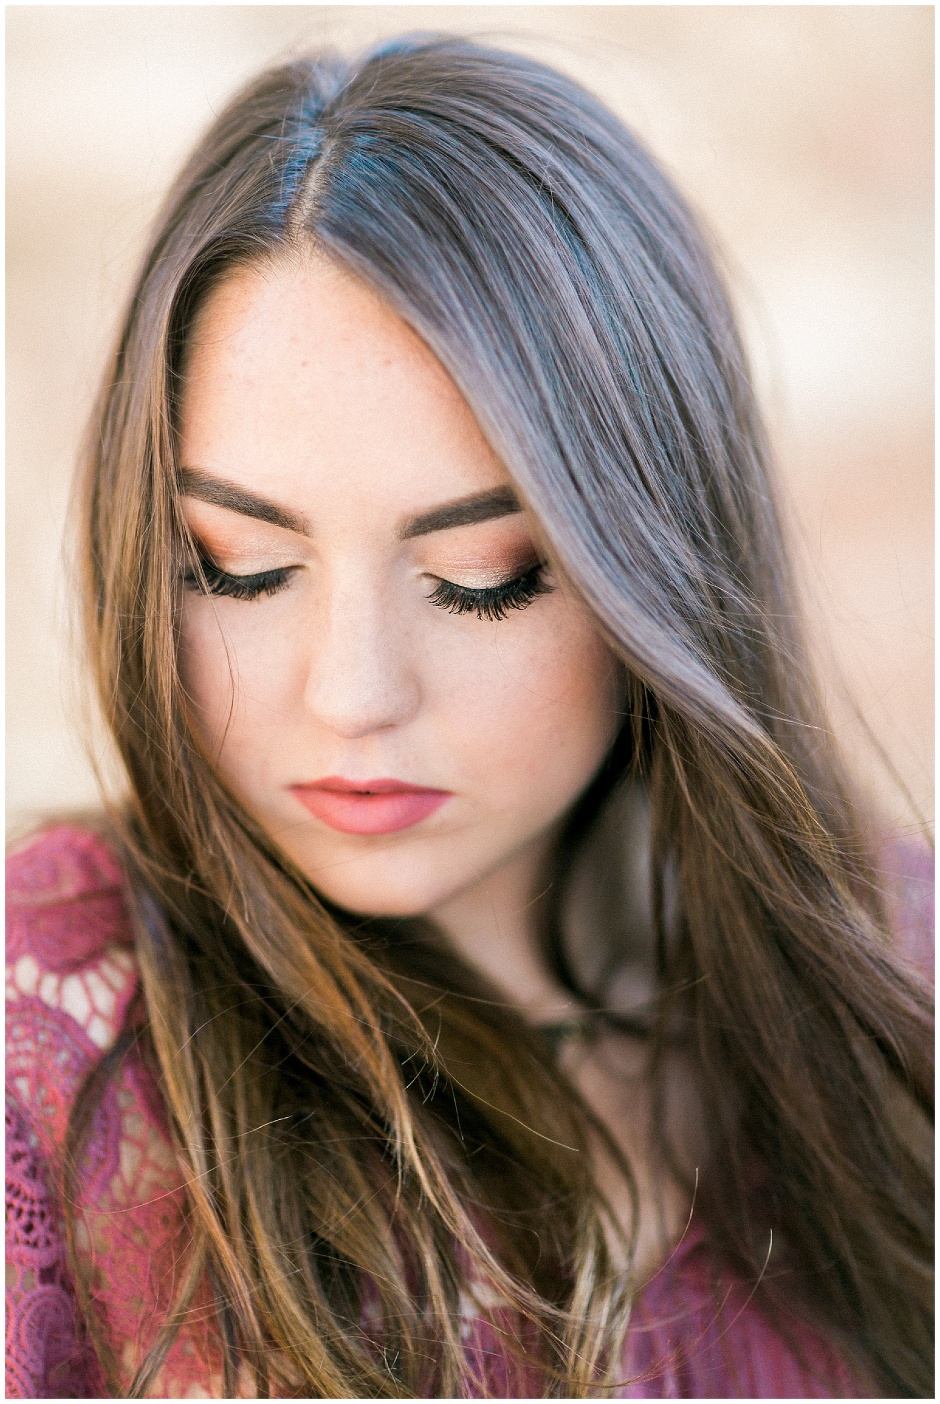 close up of young woman with long lashes